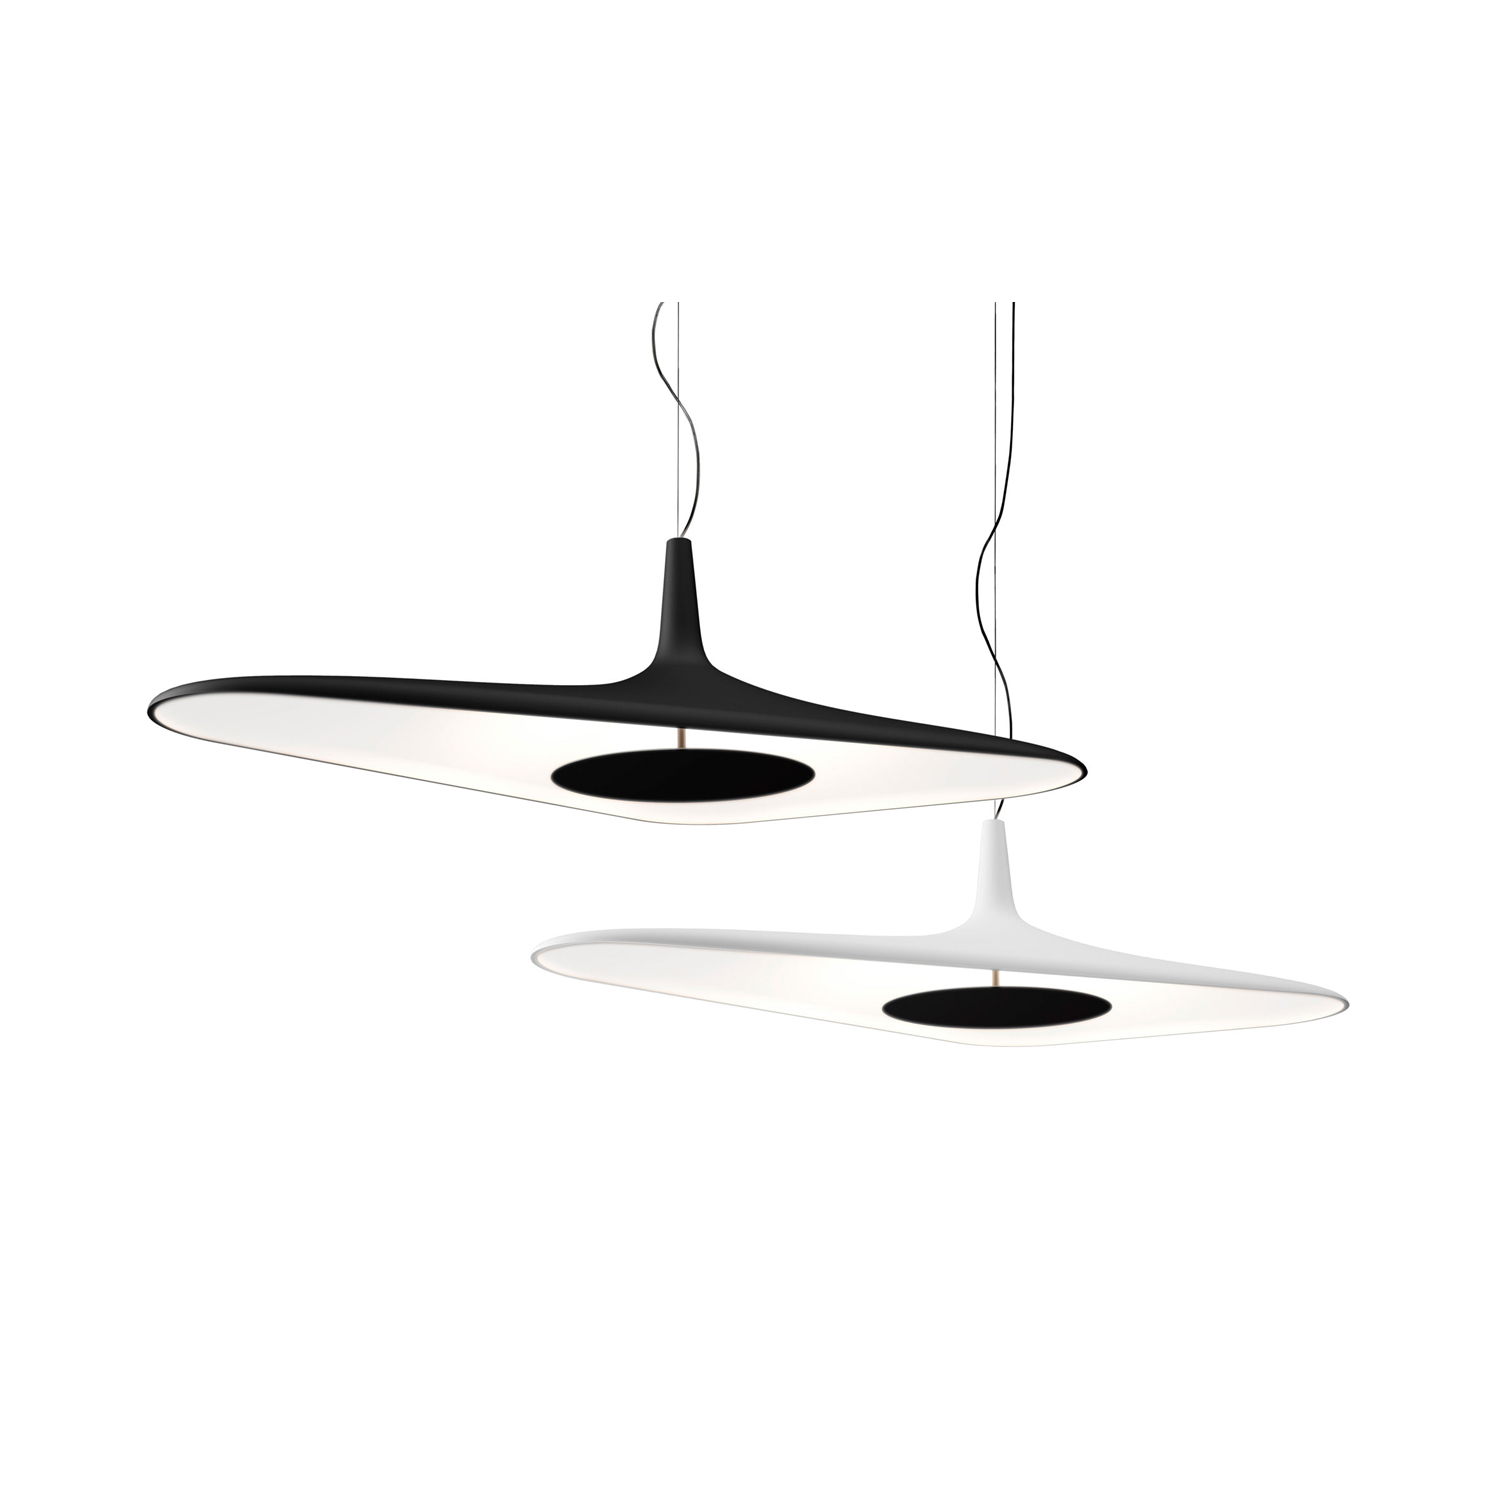 Soleil Noir Suspension Lamp - Supported by a single asymmetrical cable, the lamp keeps its balance thanks to the thicknesses of the body, varying from 8 to 25 mm, offering a slim aerial lighting element that brings brightness with discretion and elegance. An object that defies the laws of physics, thanks to technology that permits design bordering on the impossible. | Matter of Stuff